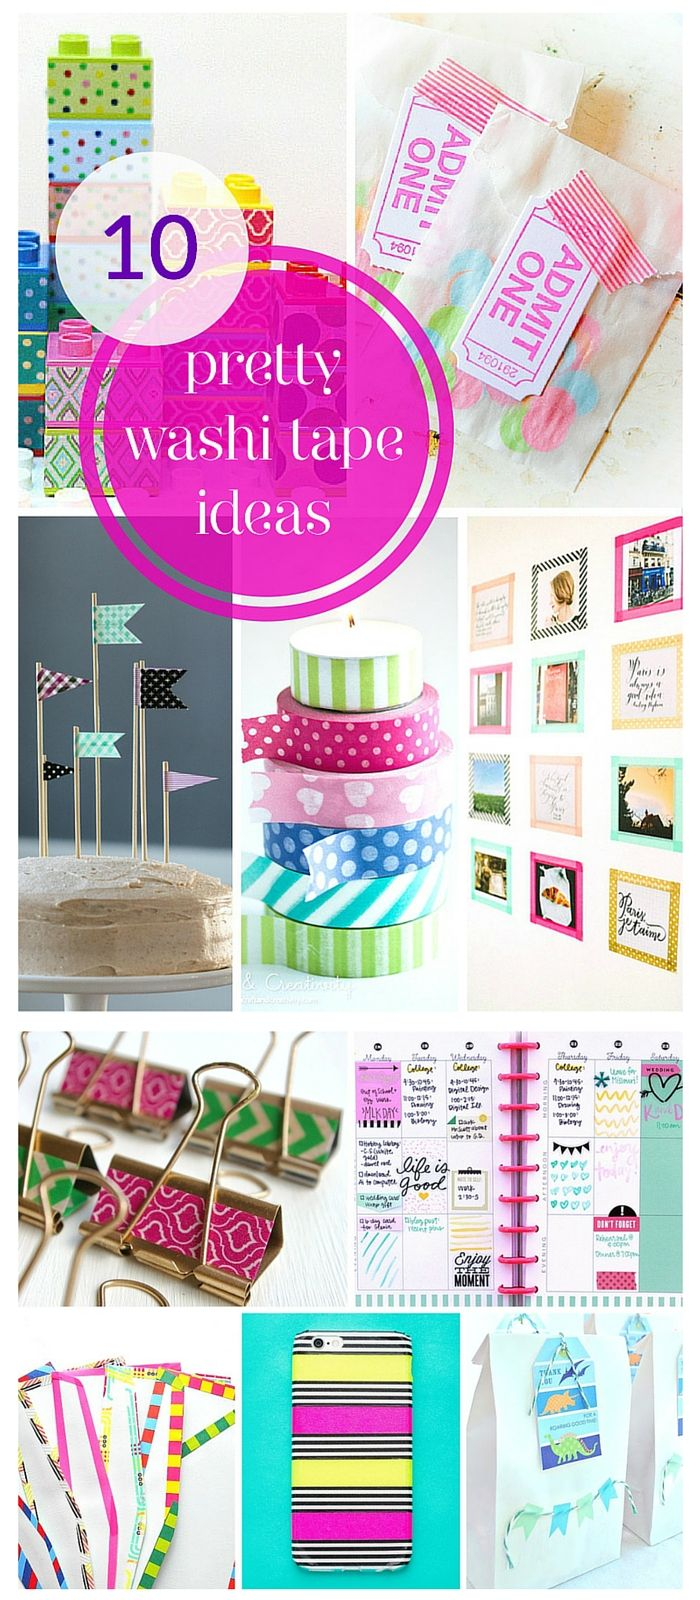 10 super pretty washi tape ideas!